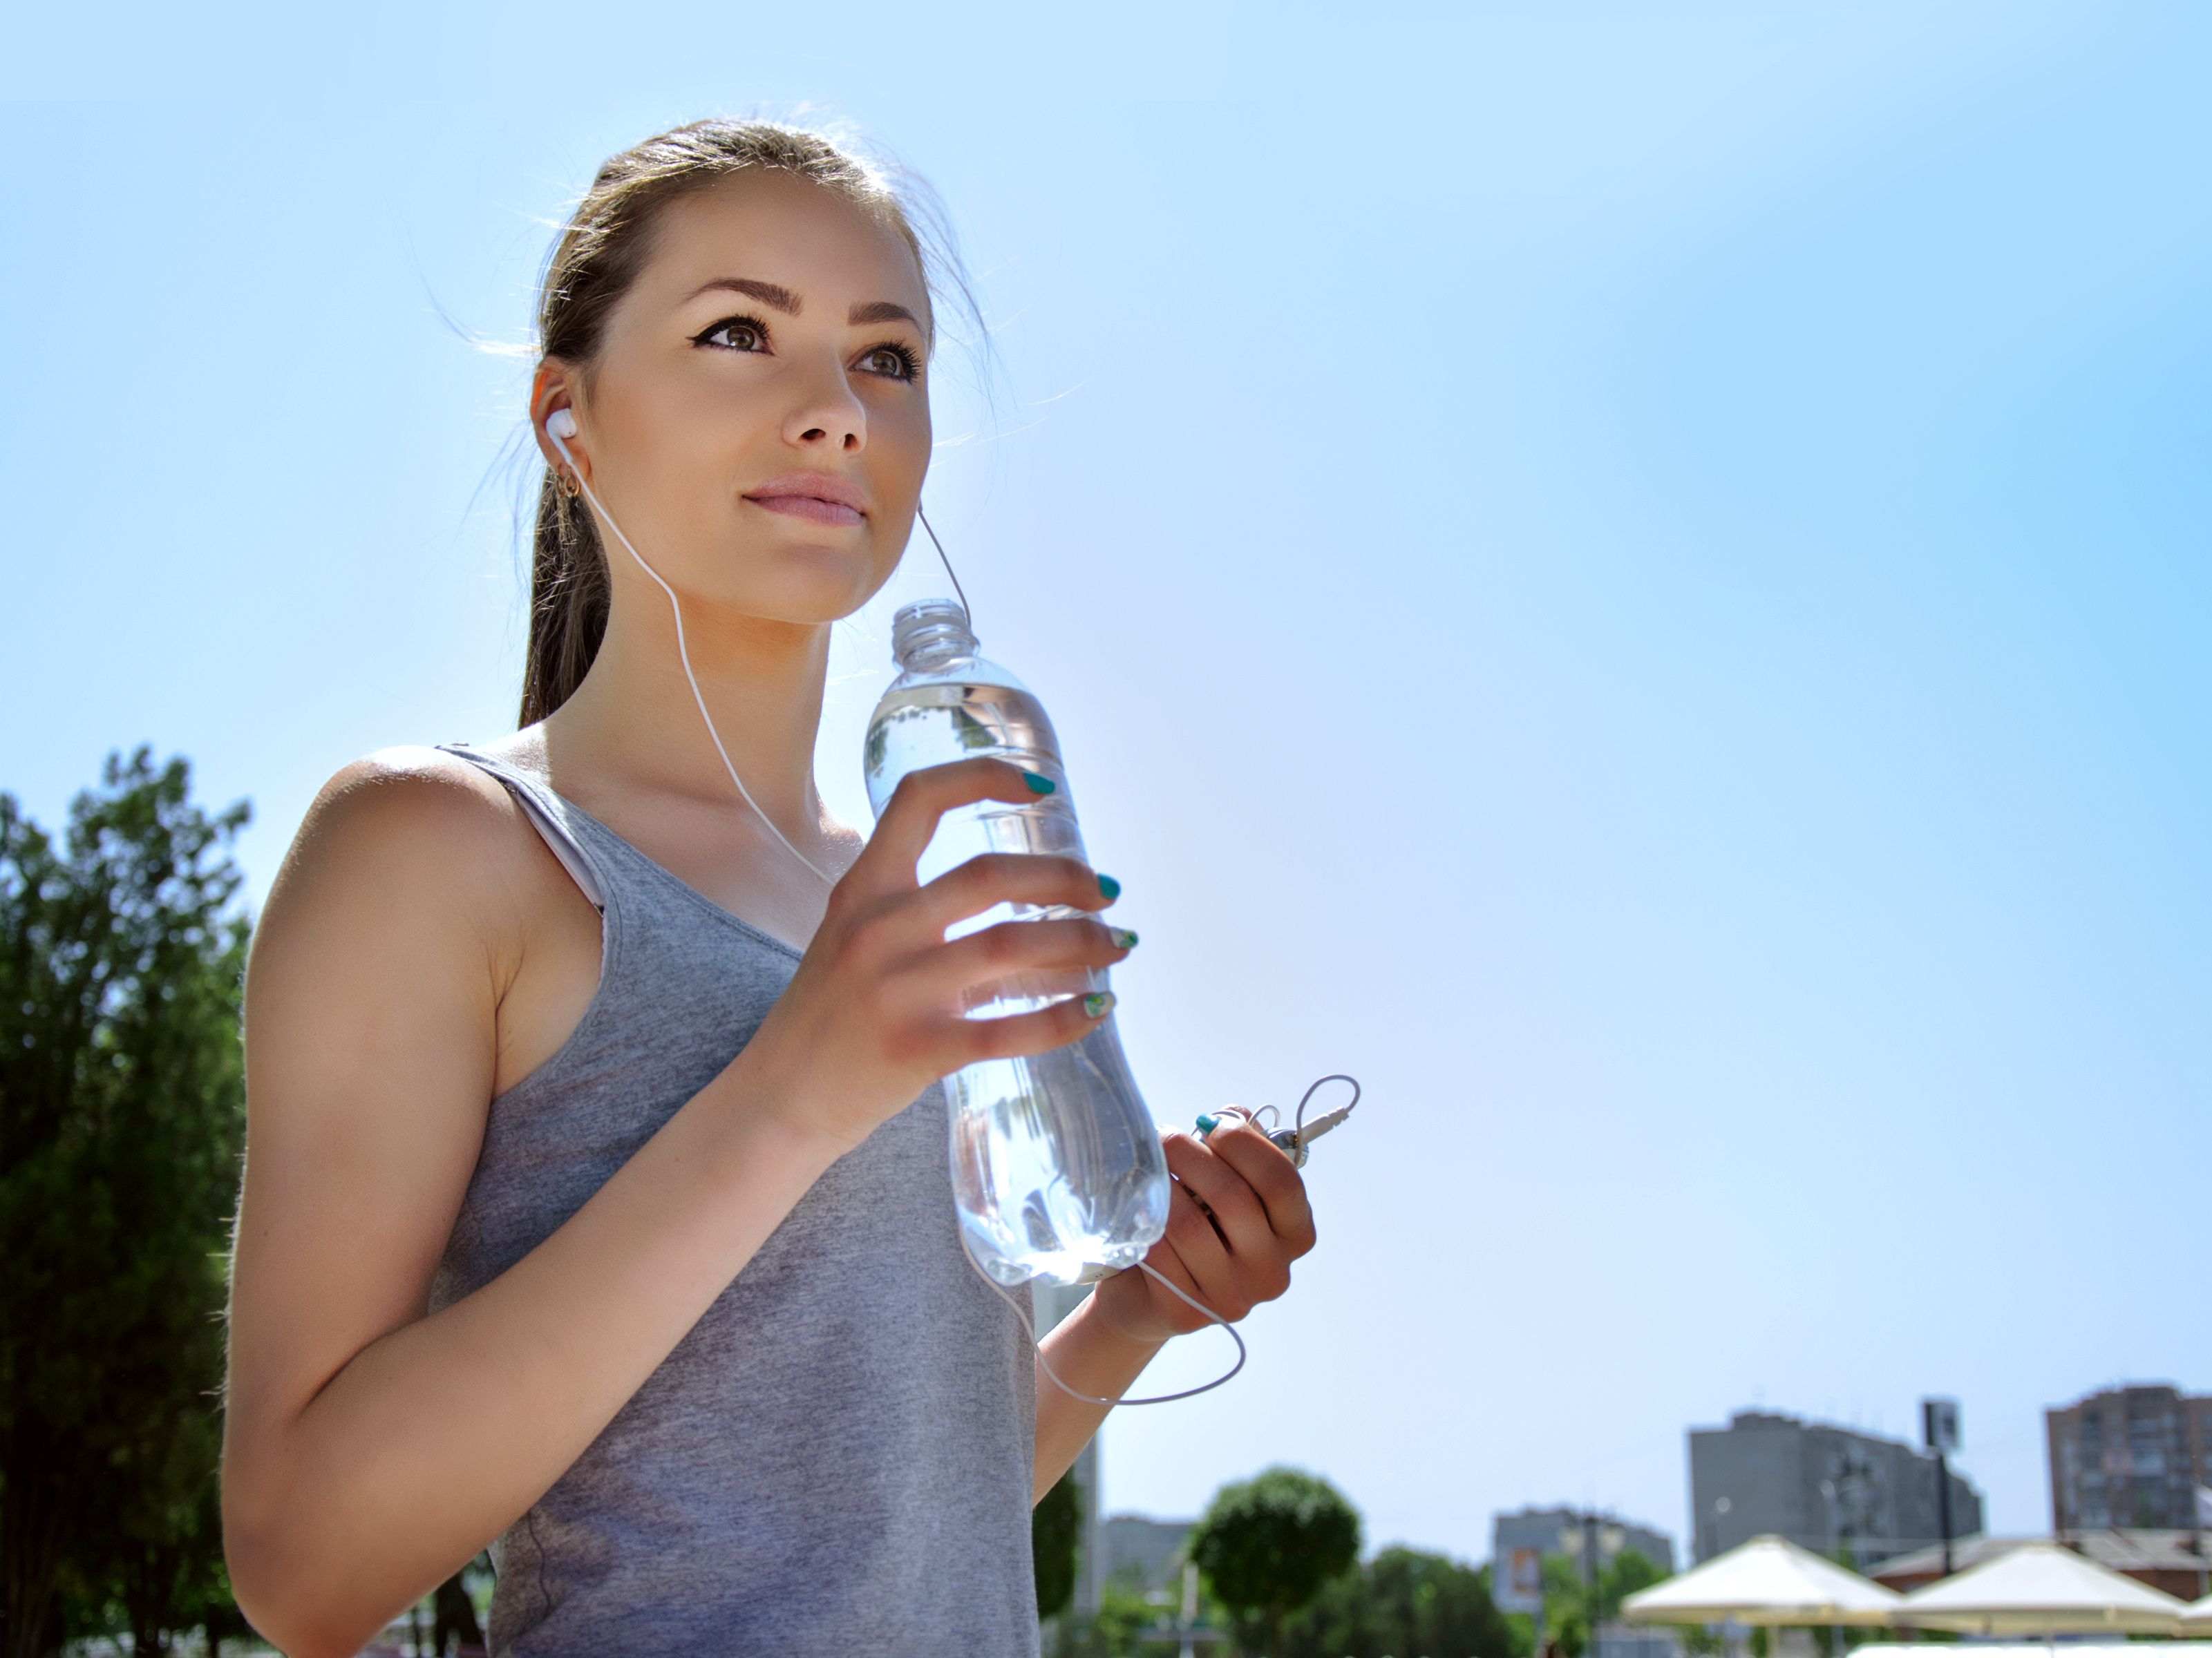 Bottled Water and Healthy Beverages in New York